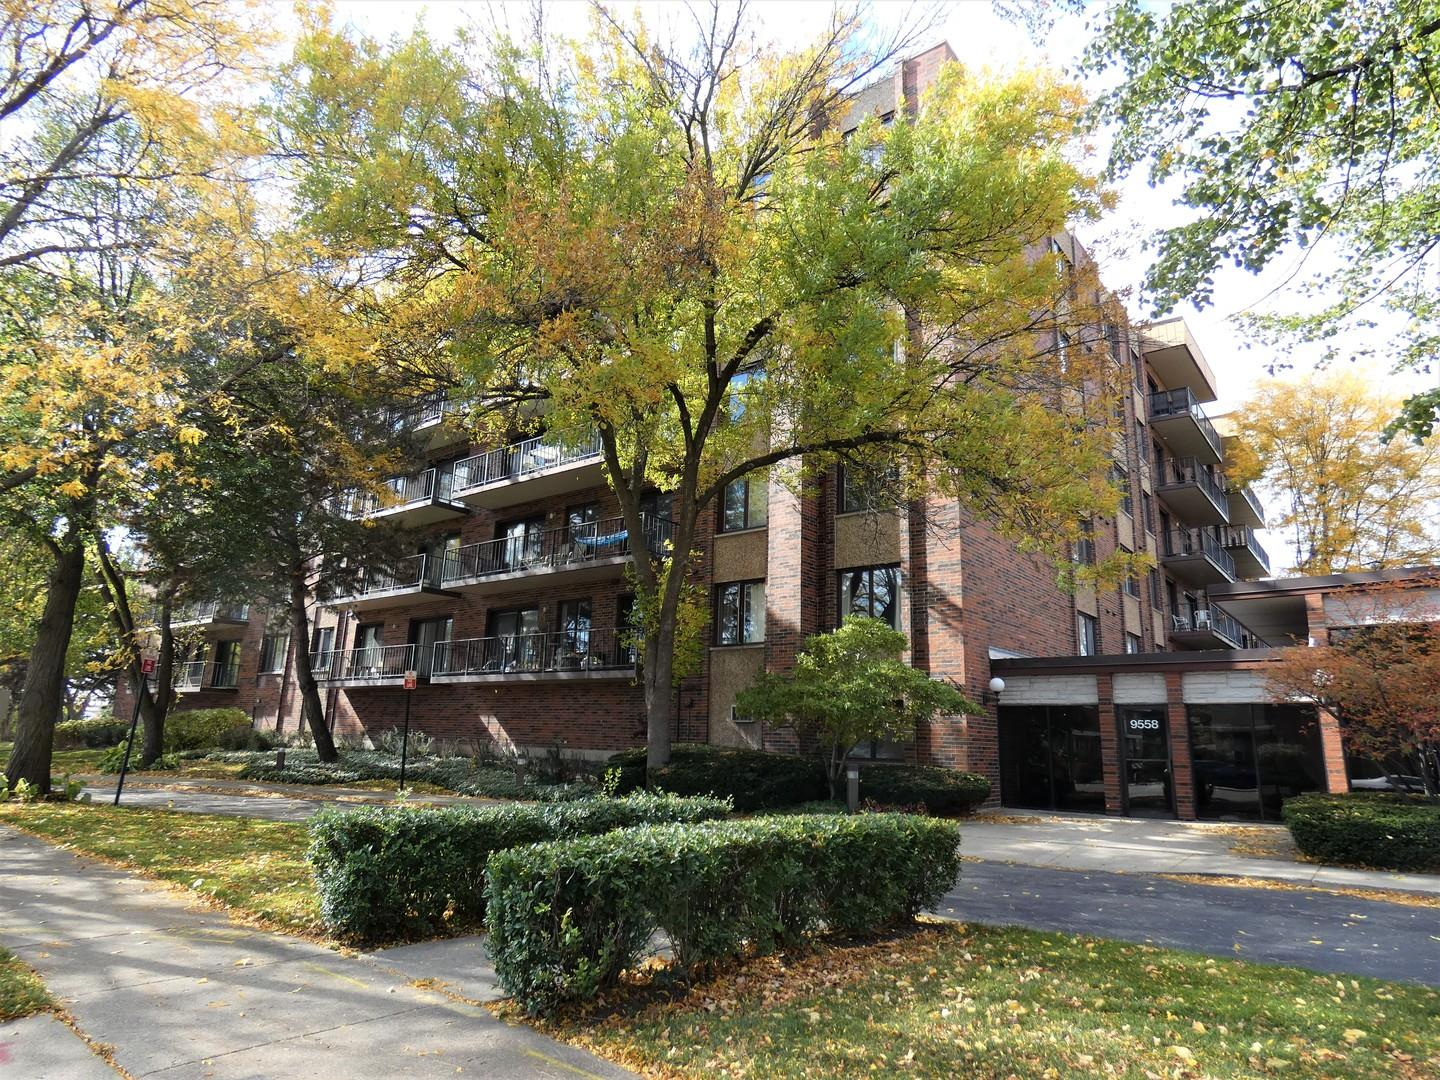 9558 Gross Point Road #302A, Skokie, IL 60076 - #: 10913051